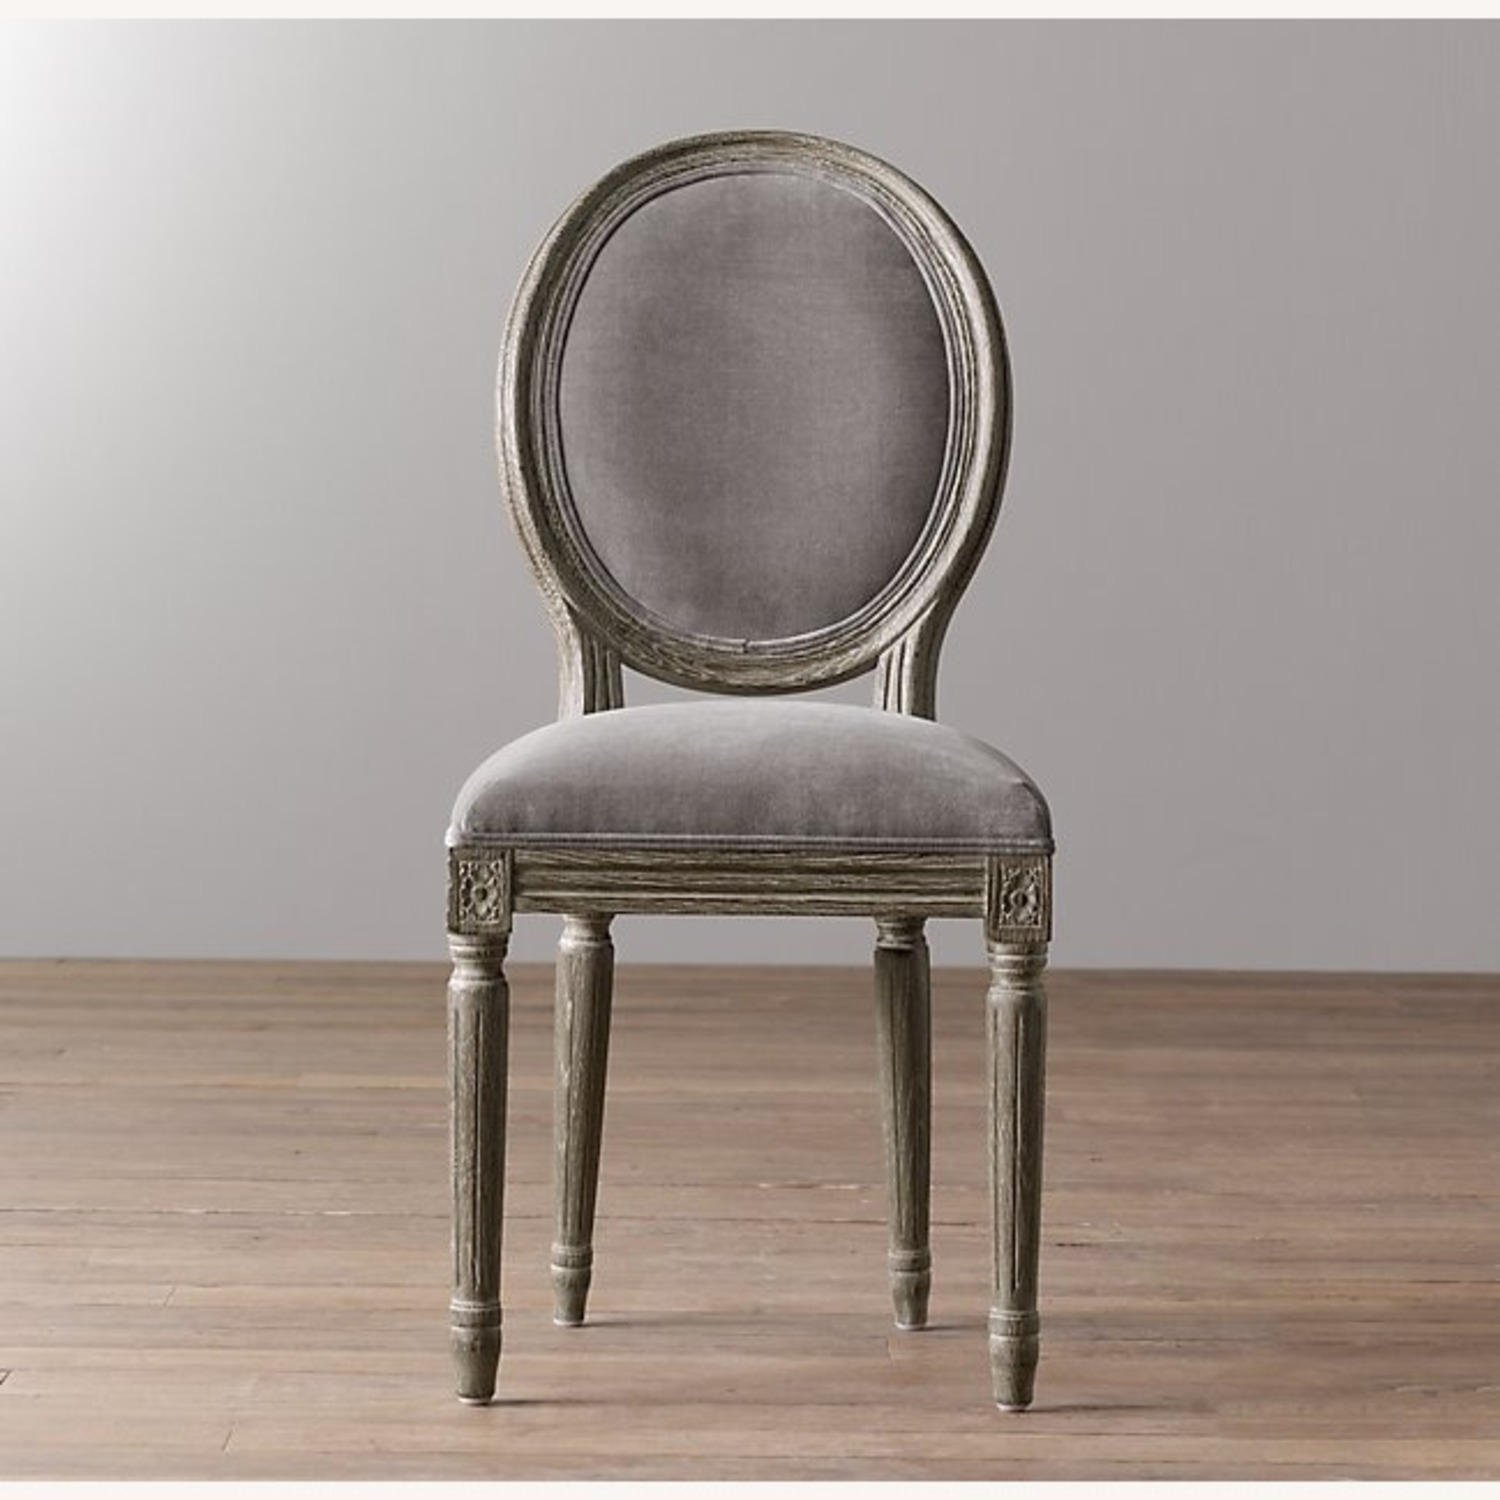 Restoration Hardware Mini Vintage French Upholstered Chair - image-5